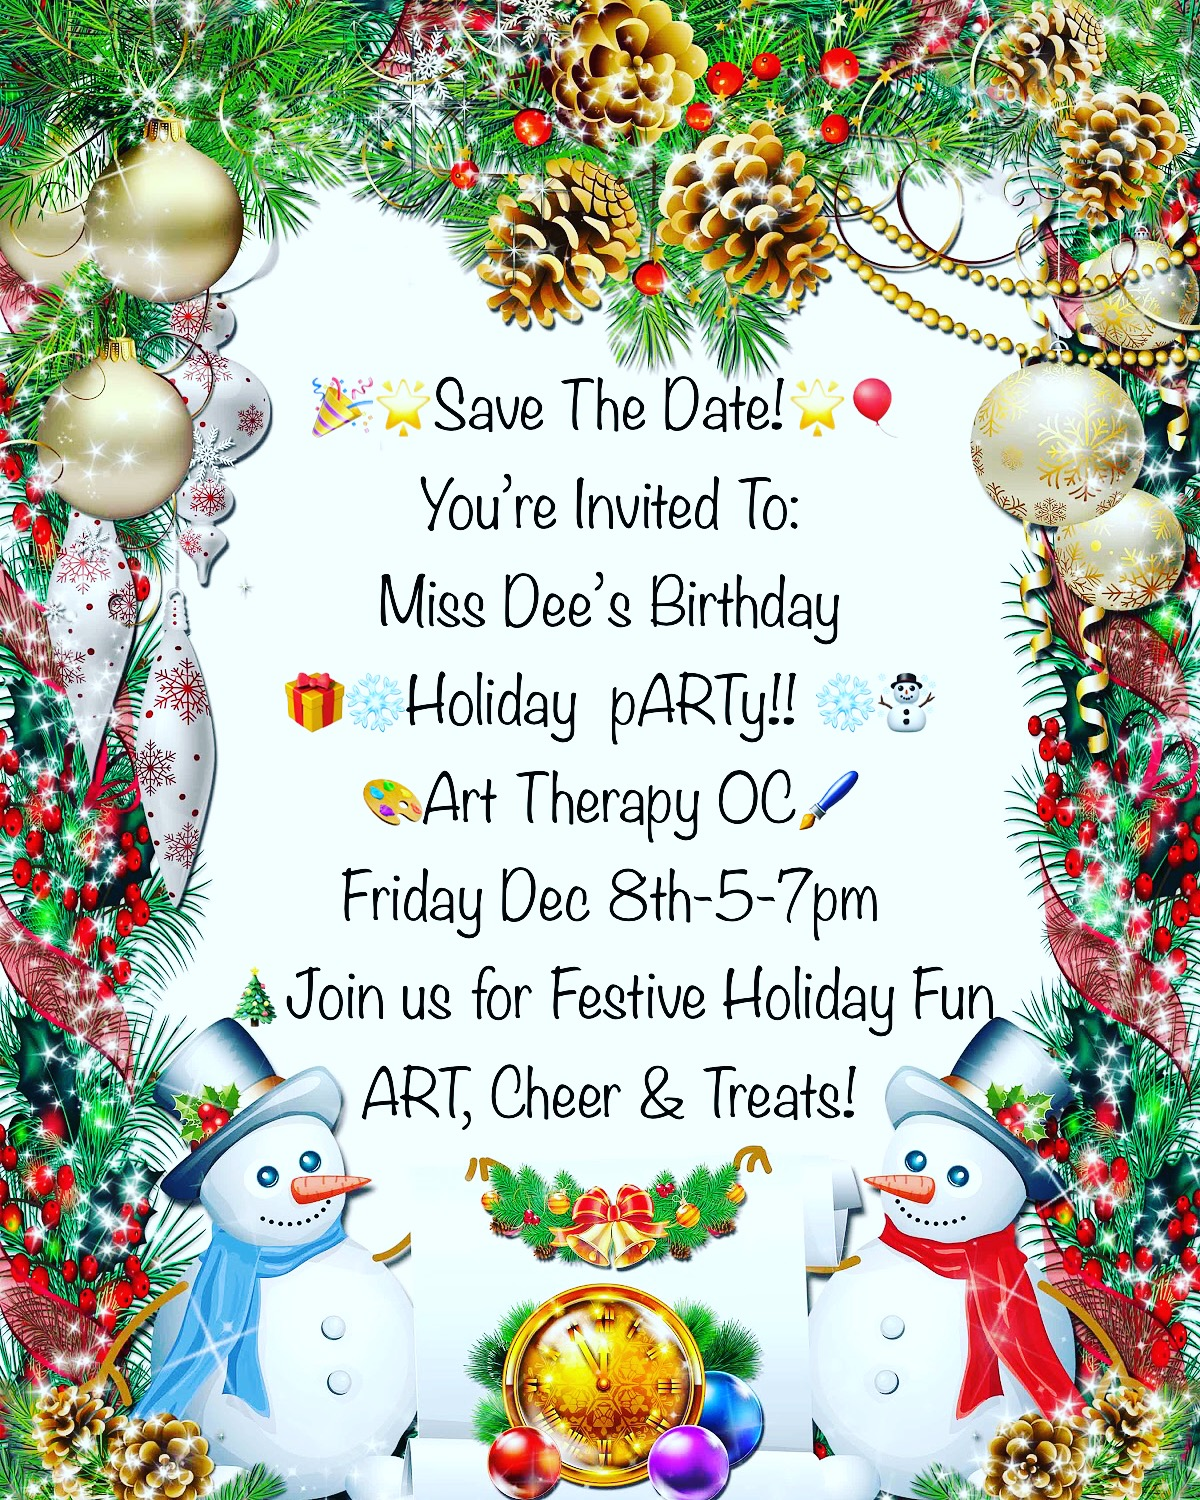 Art Therapy Oc Holiday Party